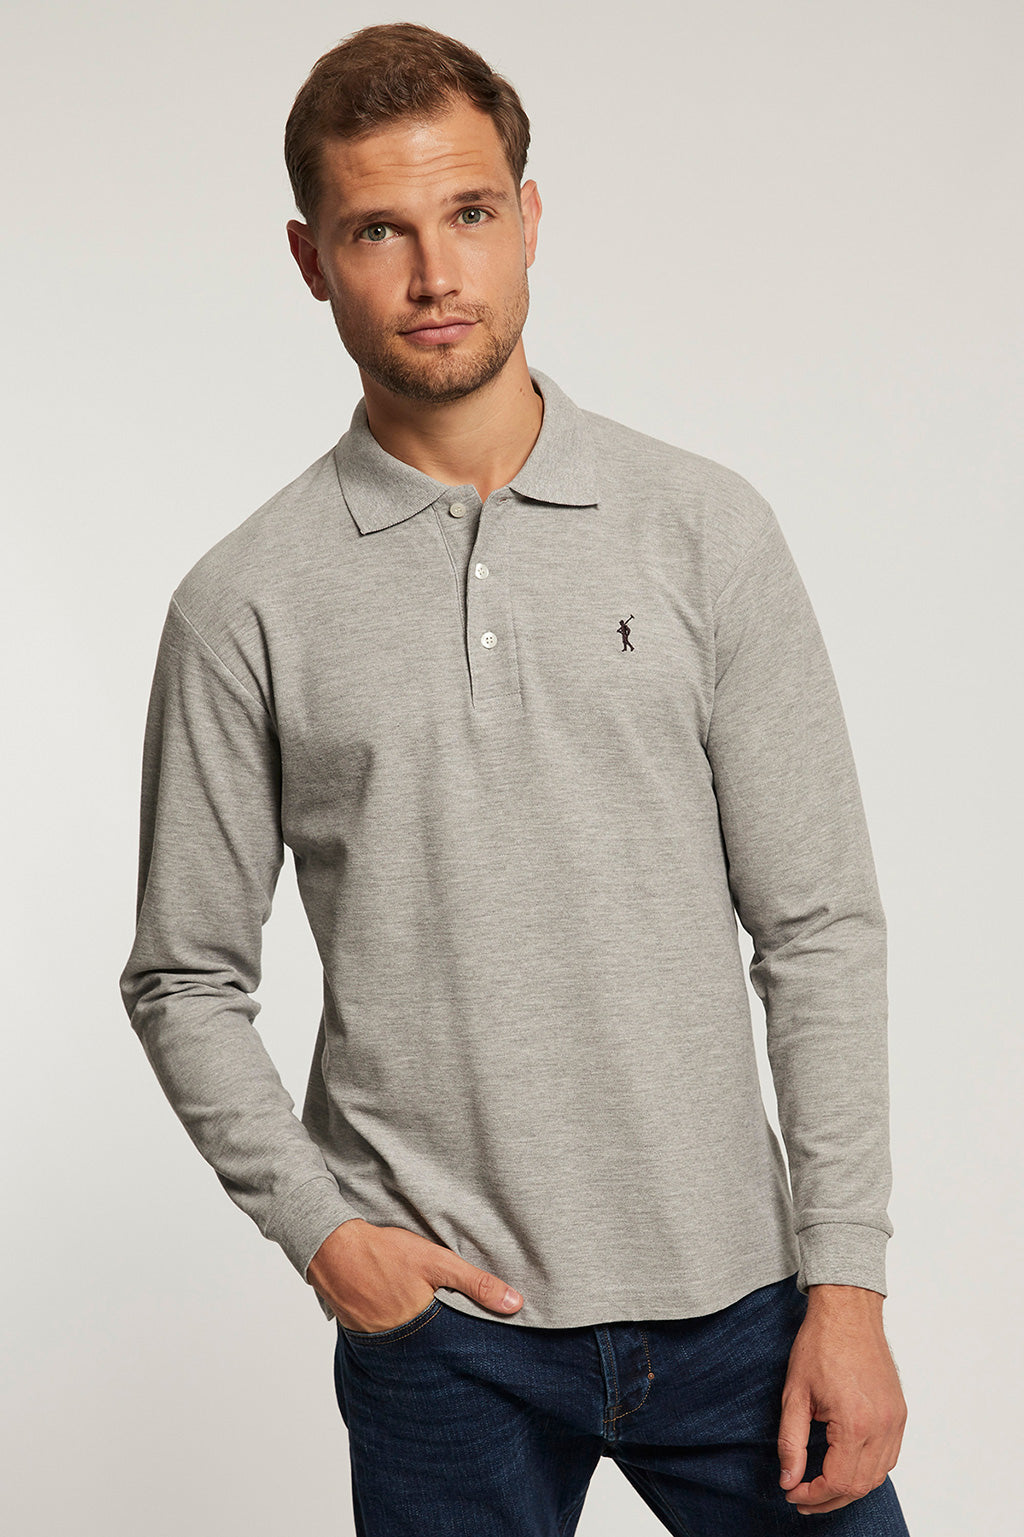 Grey long sleeve polo shirt with contrast embroidered logo